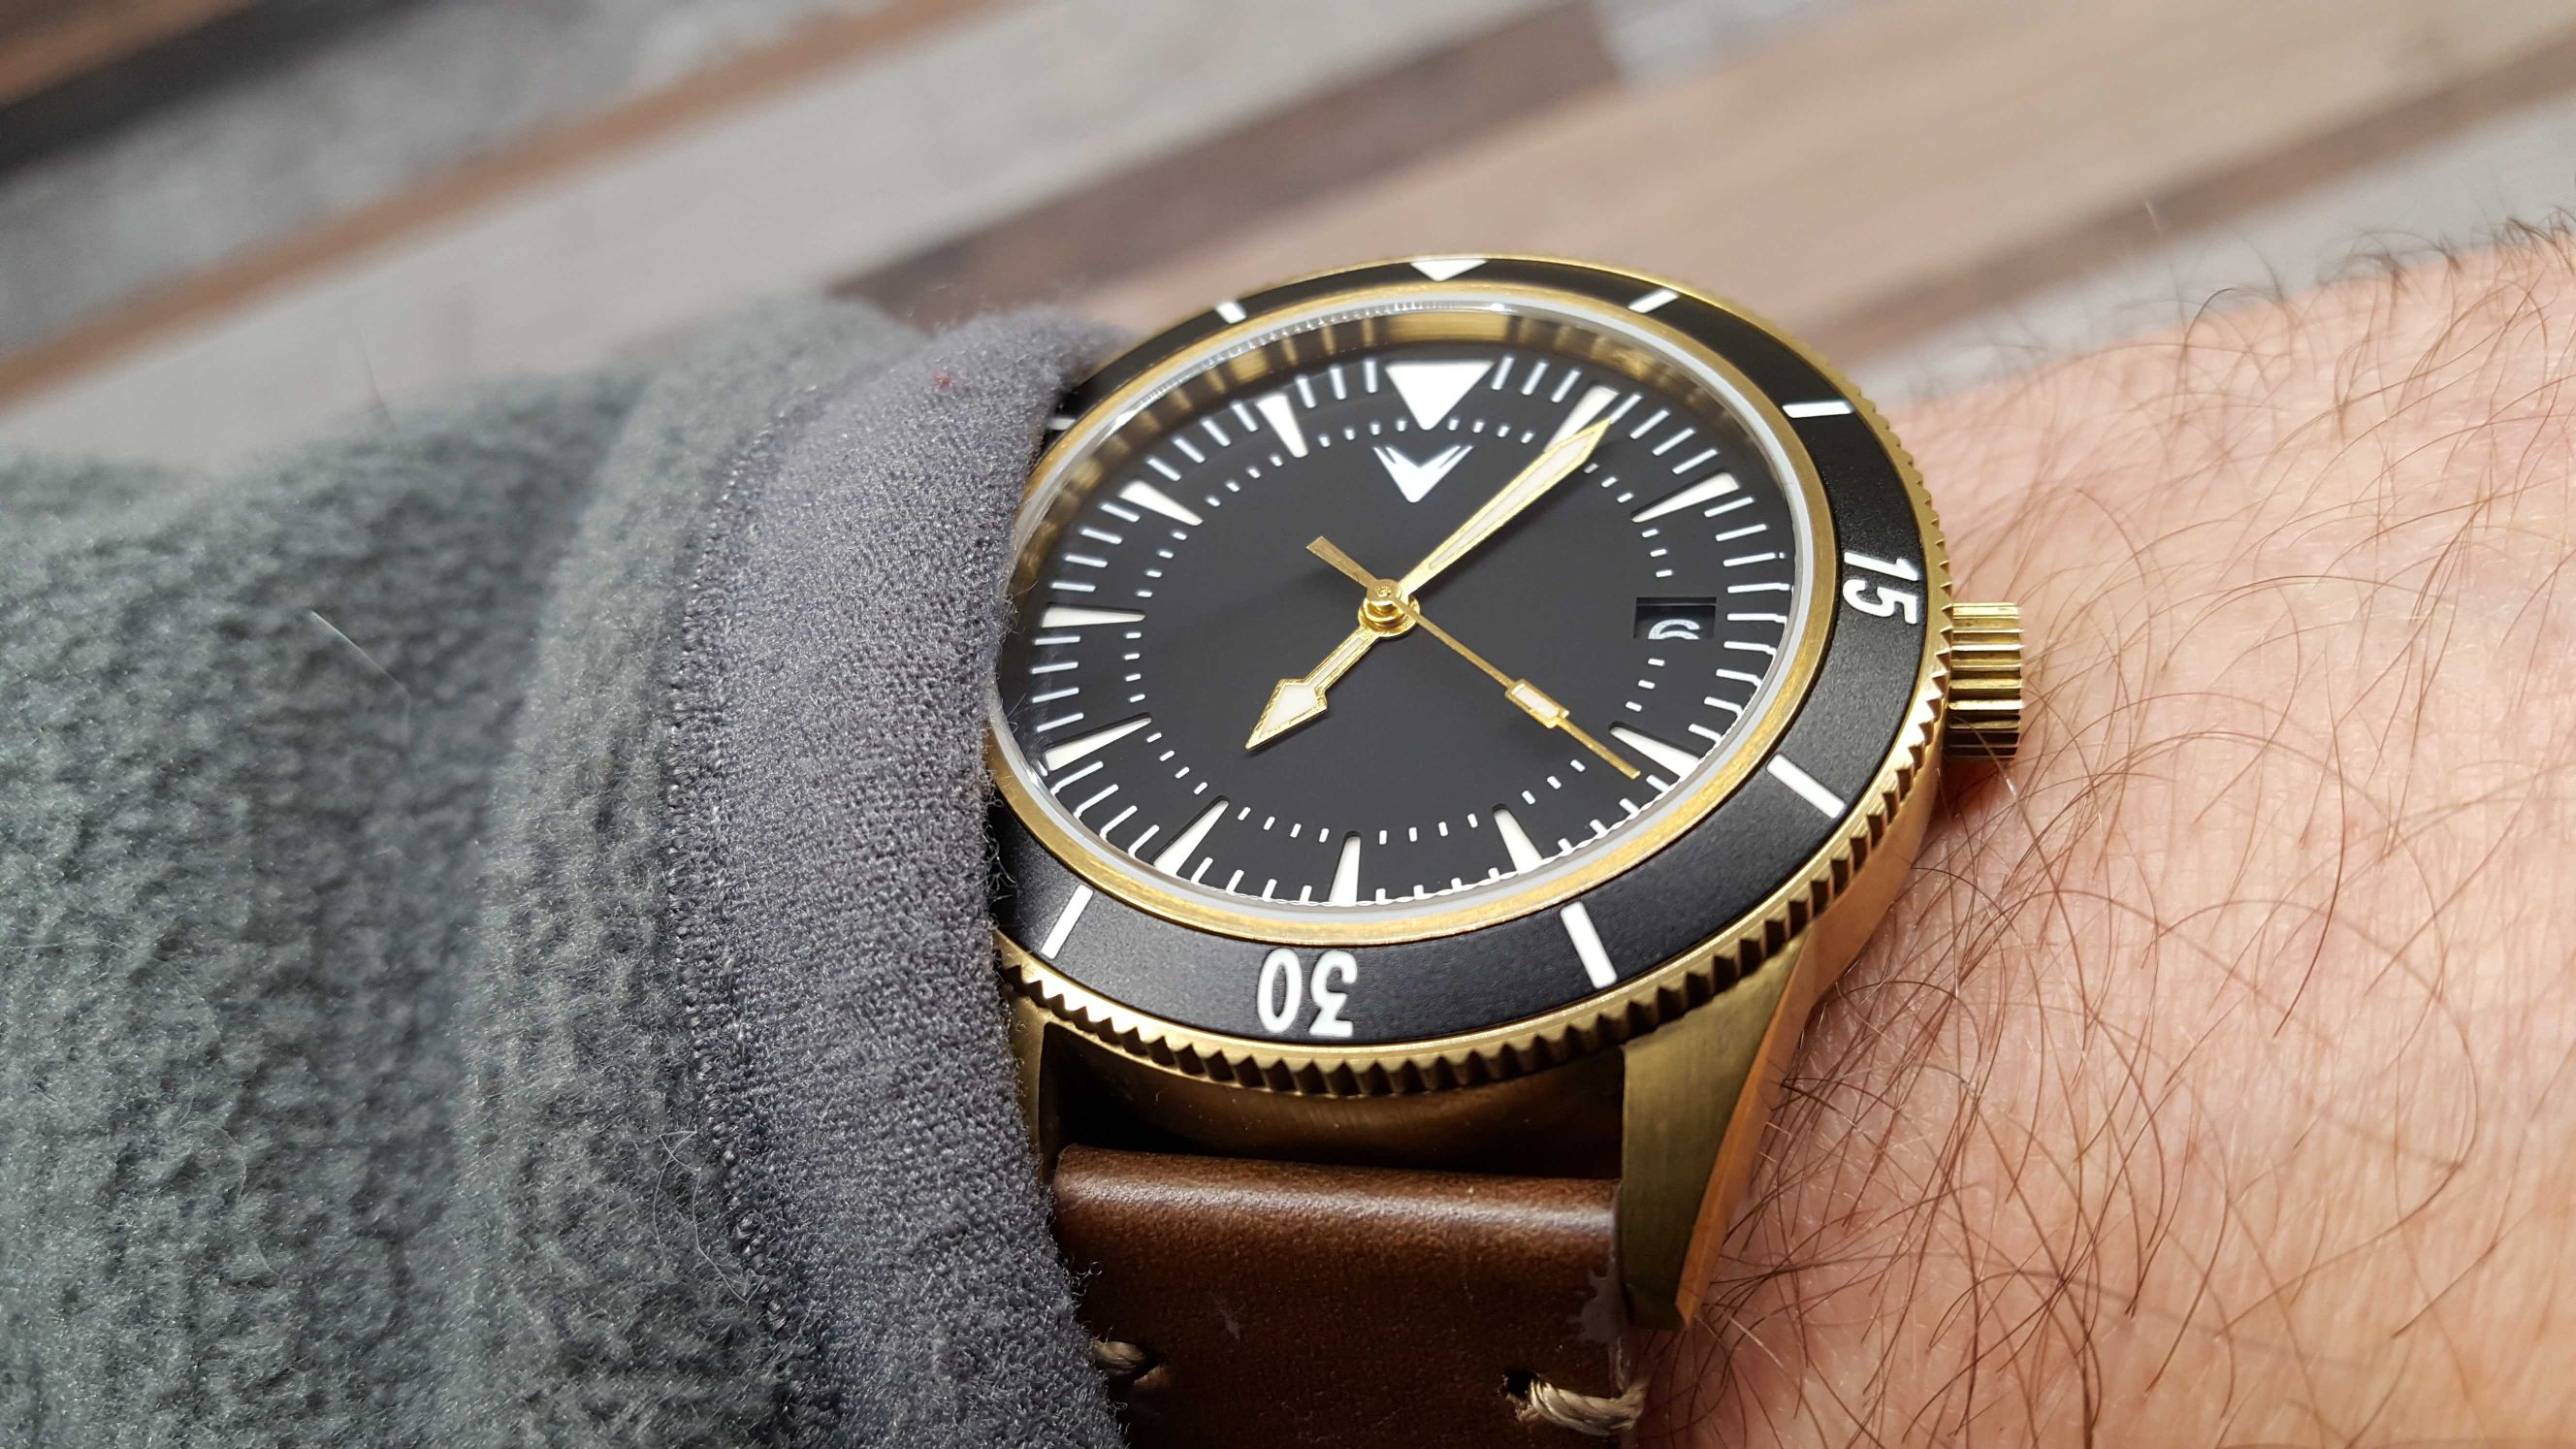 christopher ward orca watches fr pro gmt trident sokwo